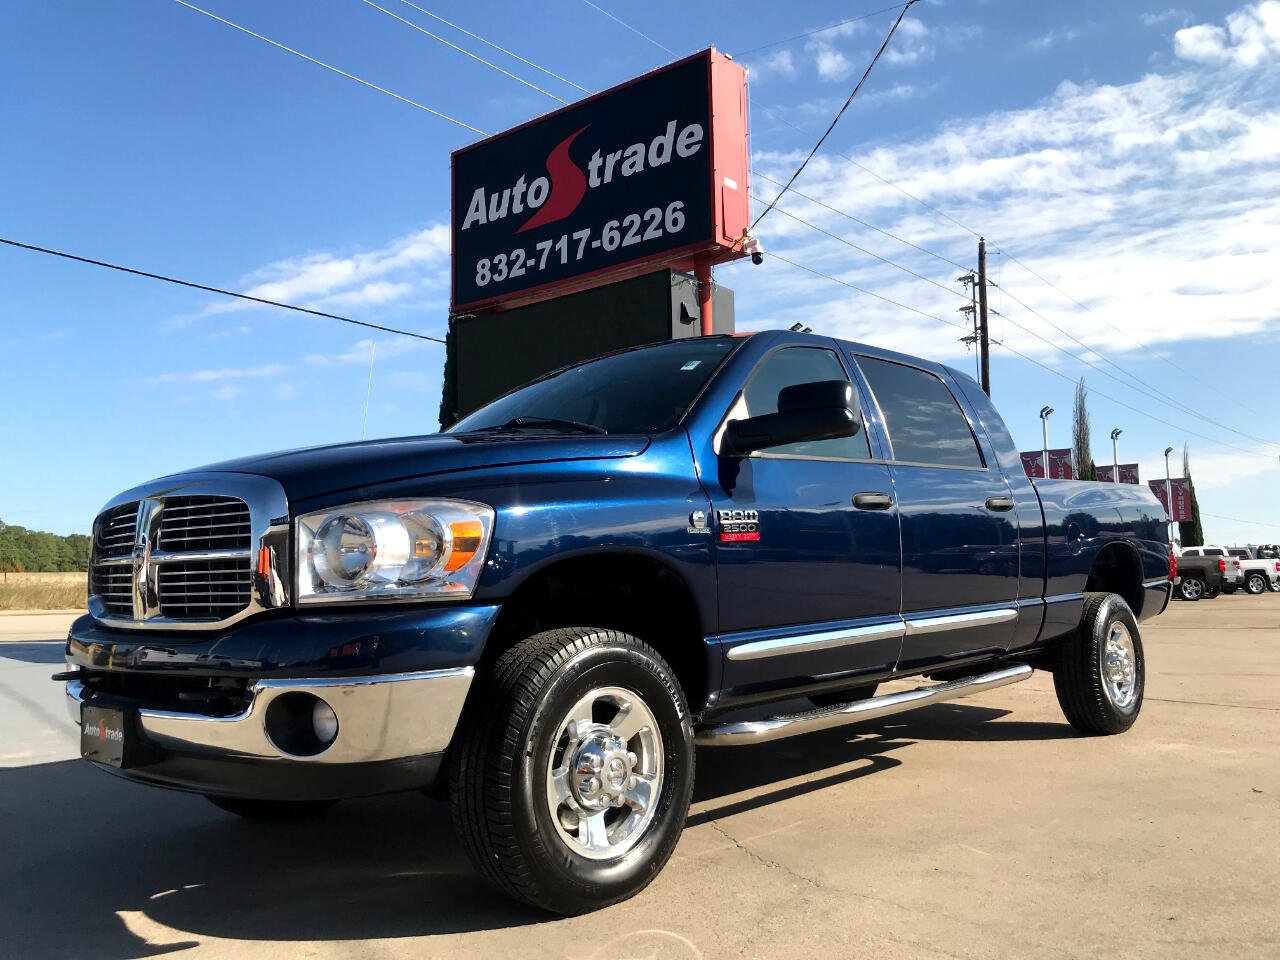 Used 2007 Dodge Ram 2500 4wd Mega Cab 160 5 Slt For Sale In Tomball Tx 77375 Autostrade